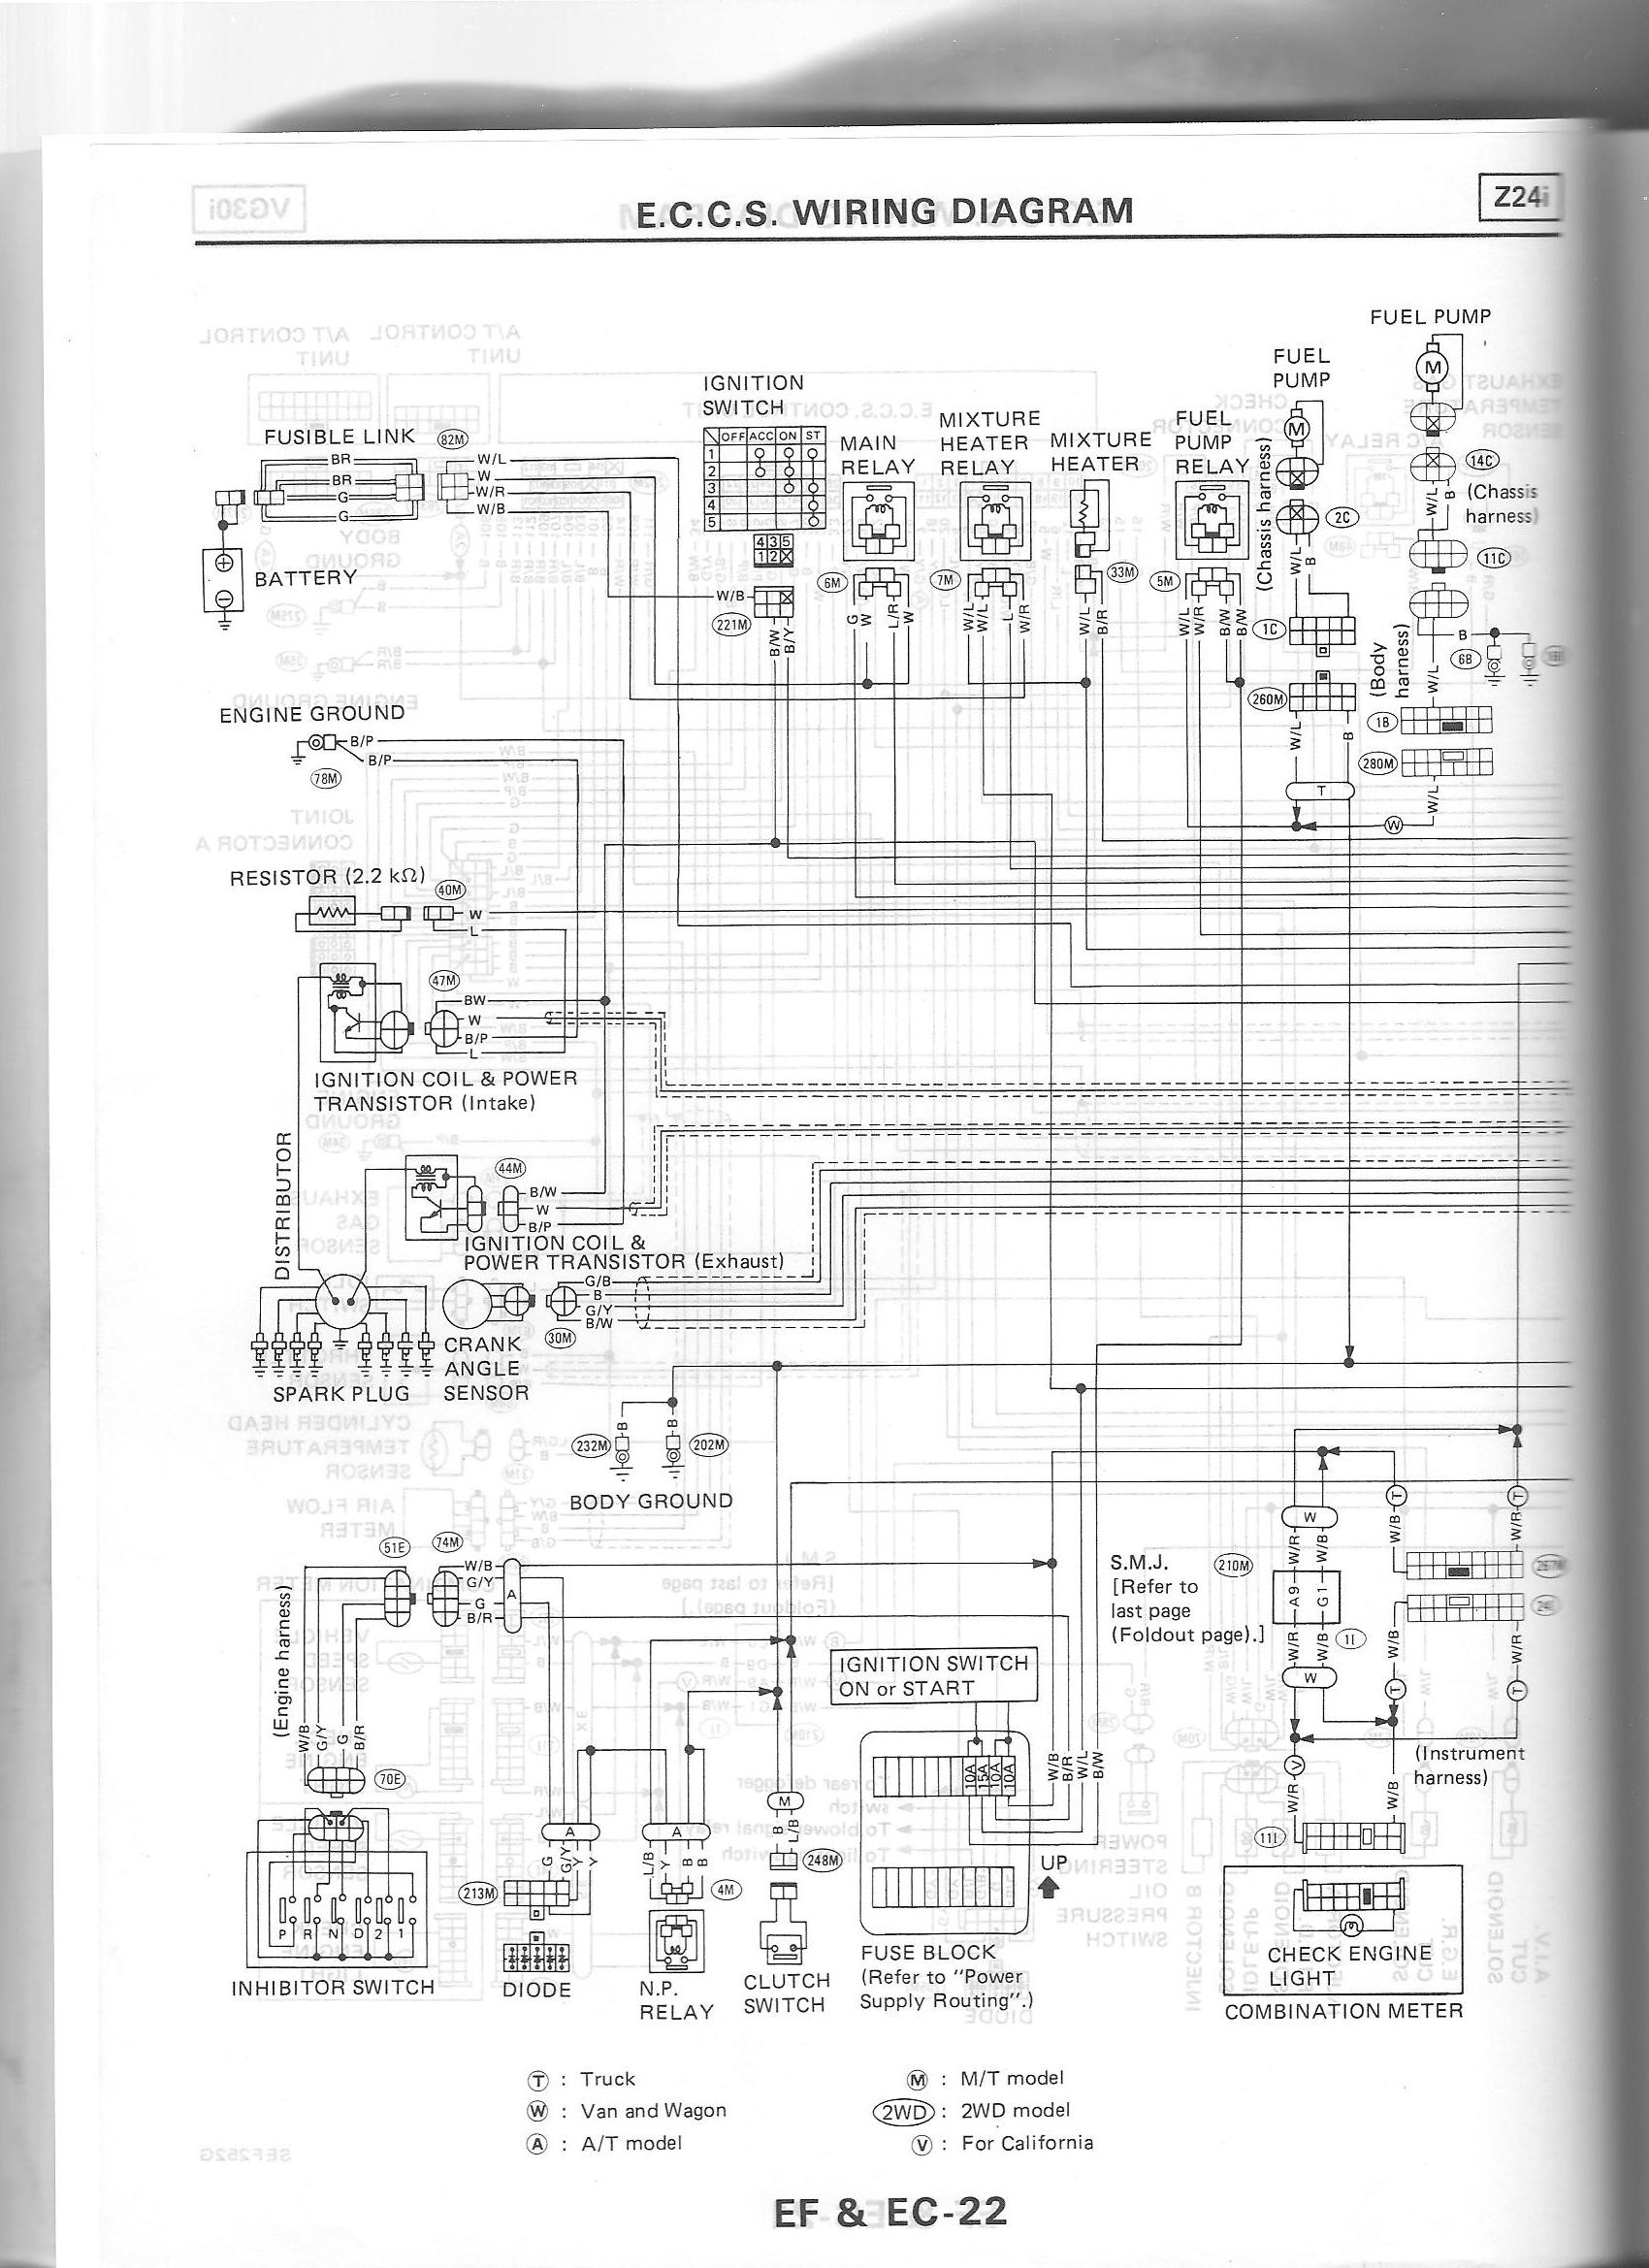 hight resolution of 89 nissan pickup wiring diagram wiring diagrams konsult1989 nissan 300zx diagram wiring schematic wiring diagram query